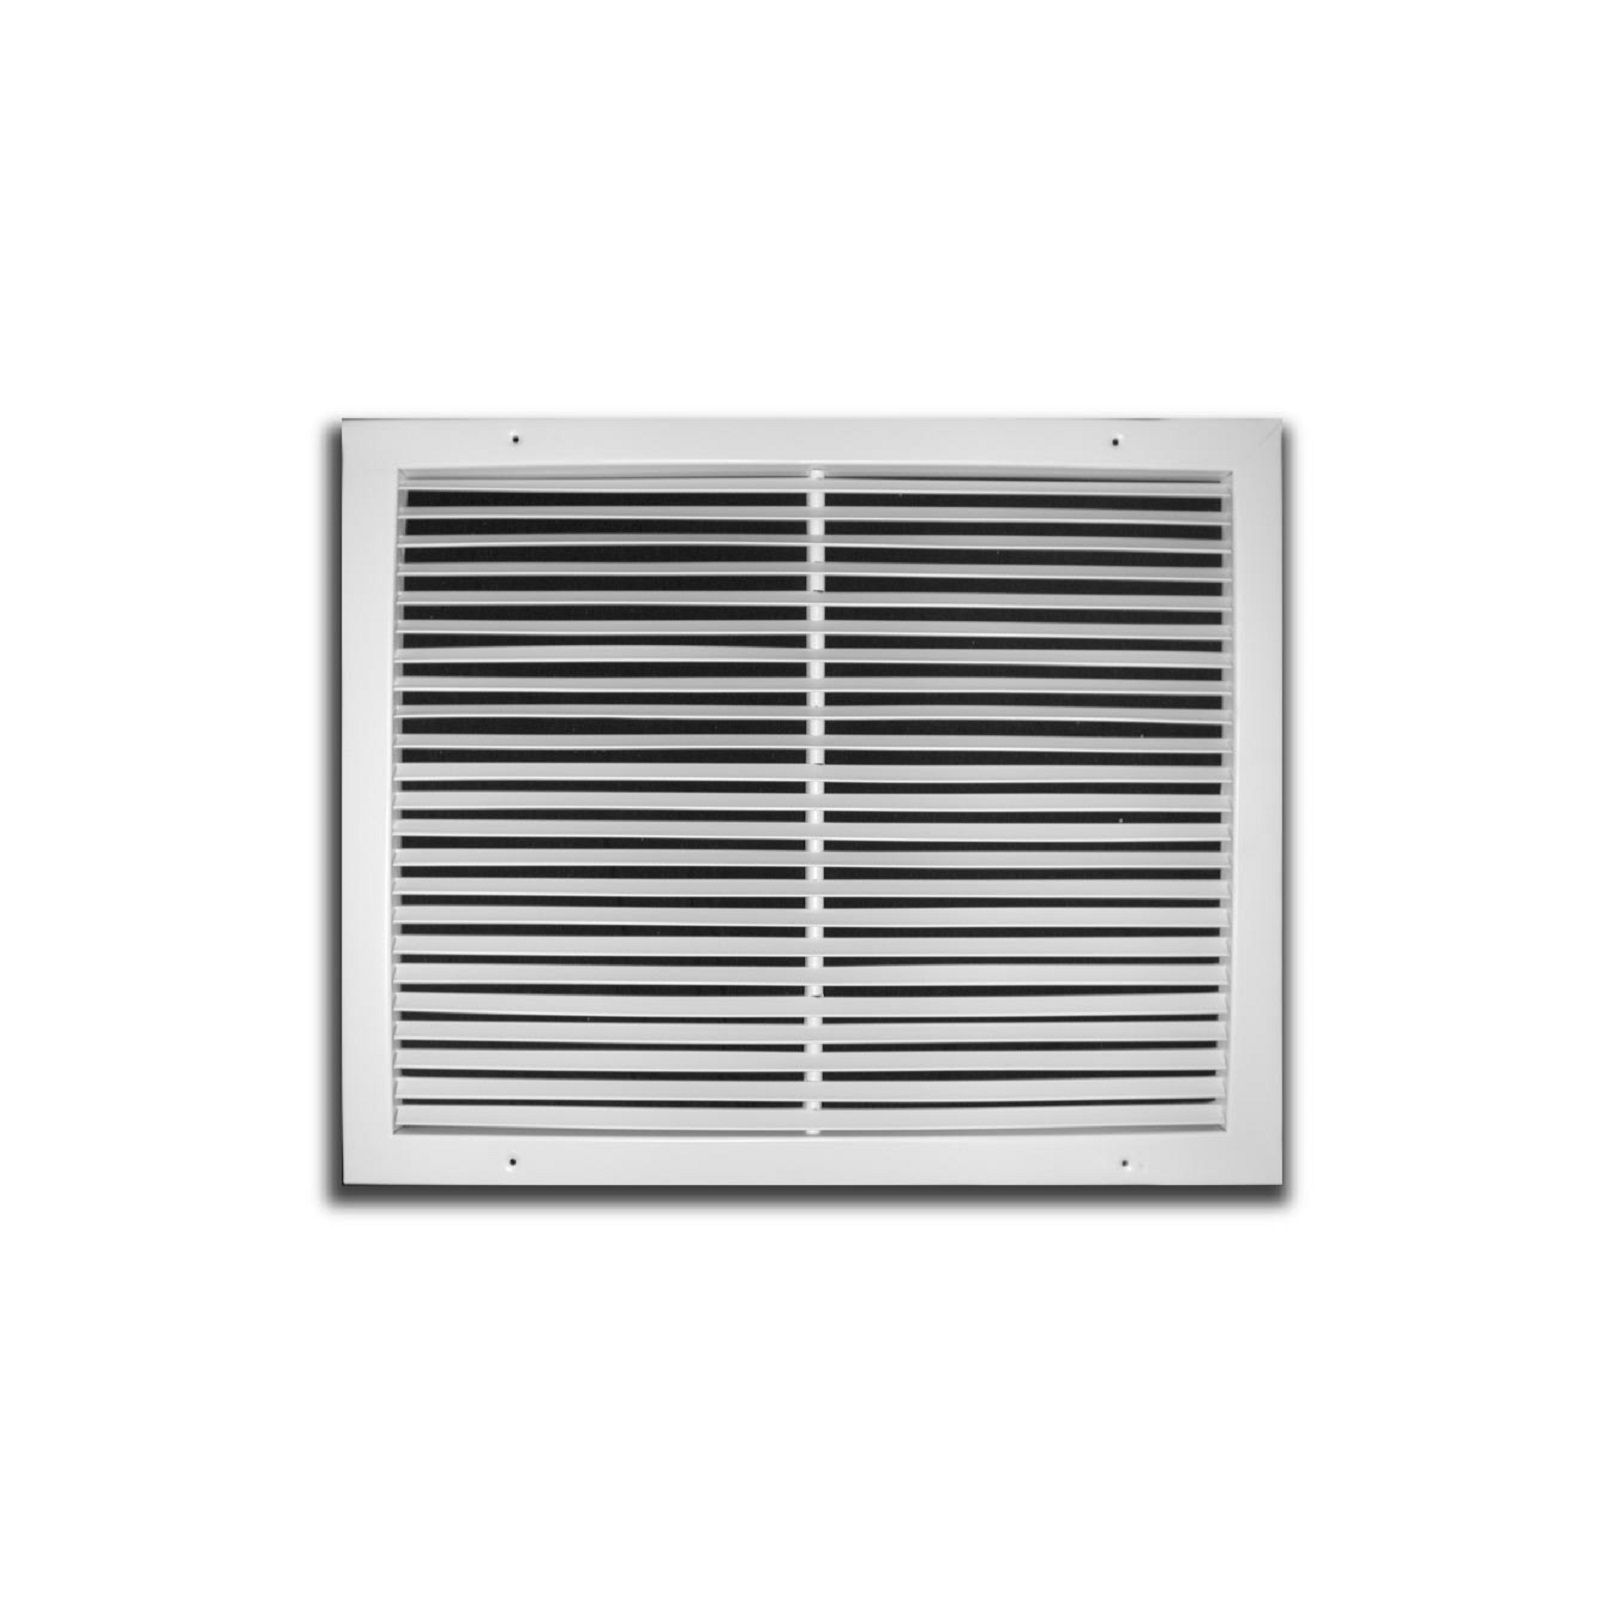 "TRUaire 270 24X04 - Steel Fixed Bar Return Air Grille, White, 24"" X 04"""